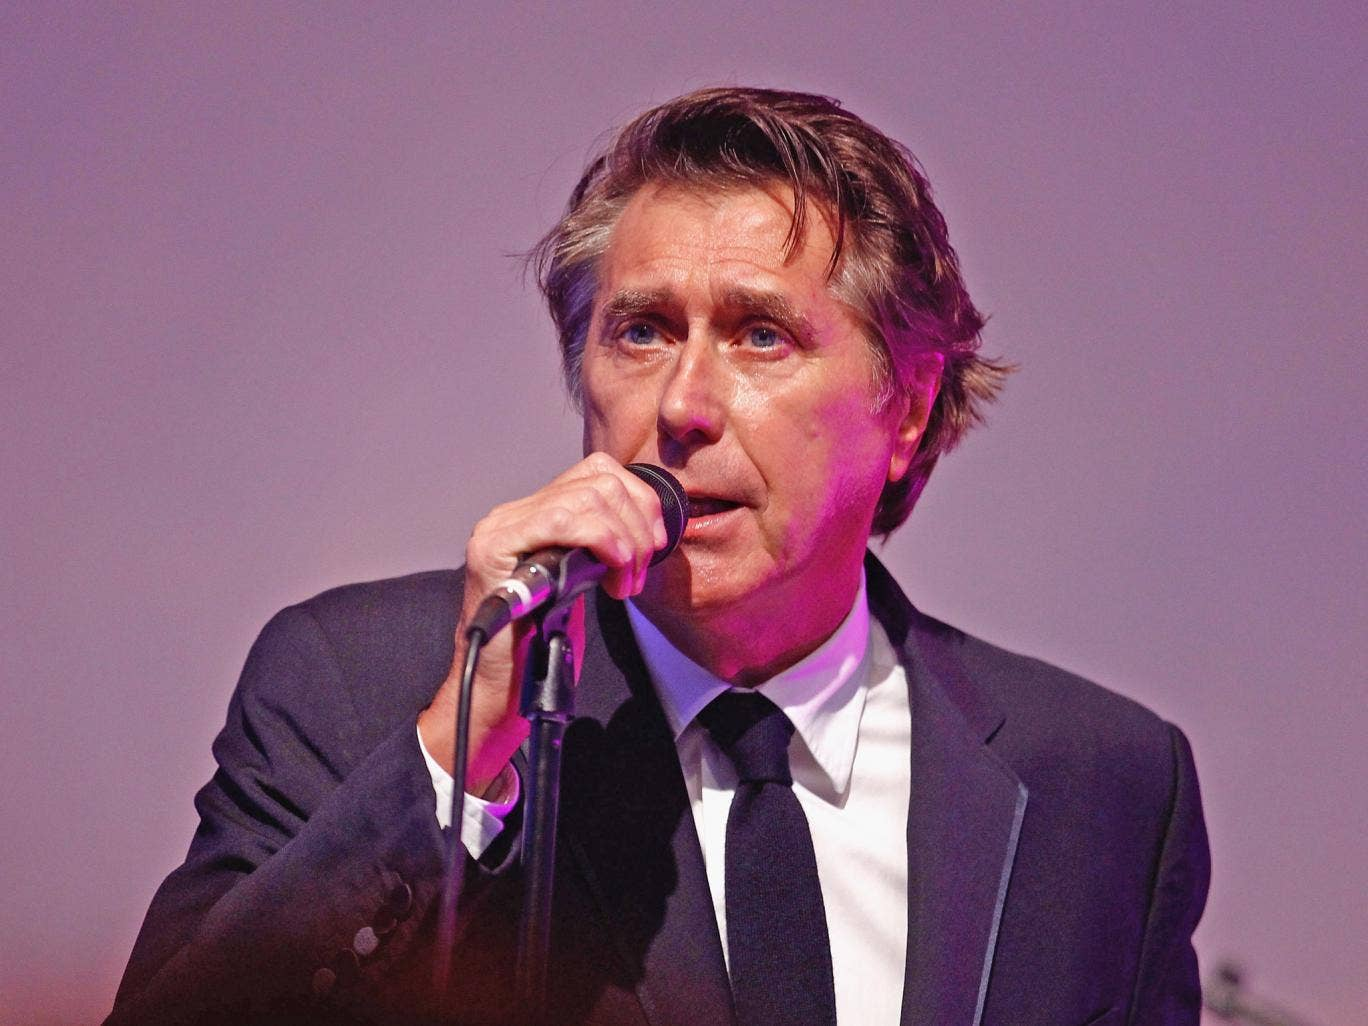 Singer Bryan Ferry performs on stage